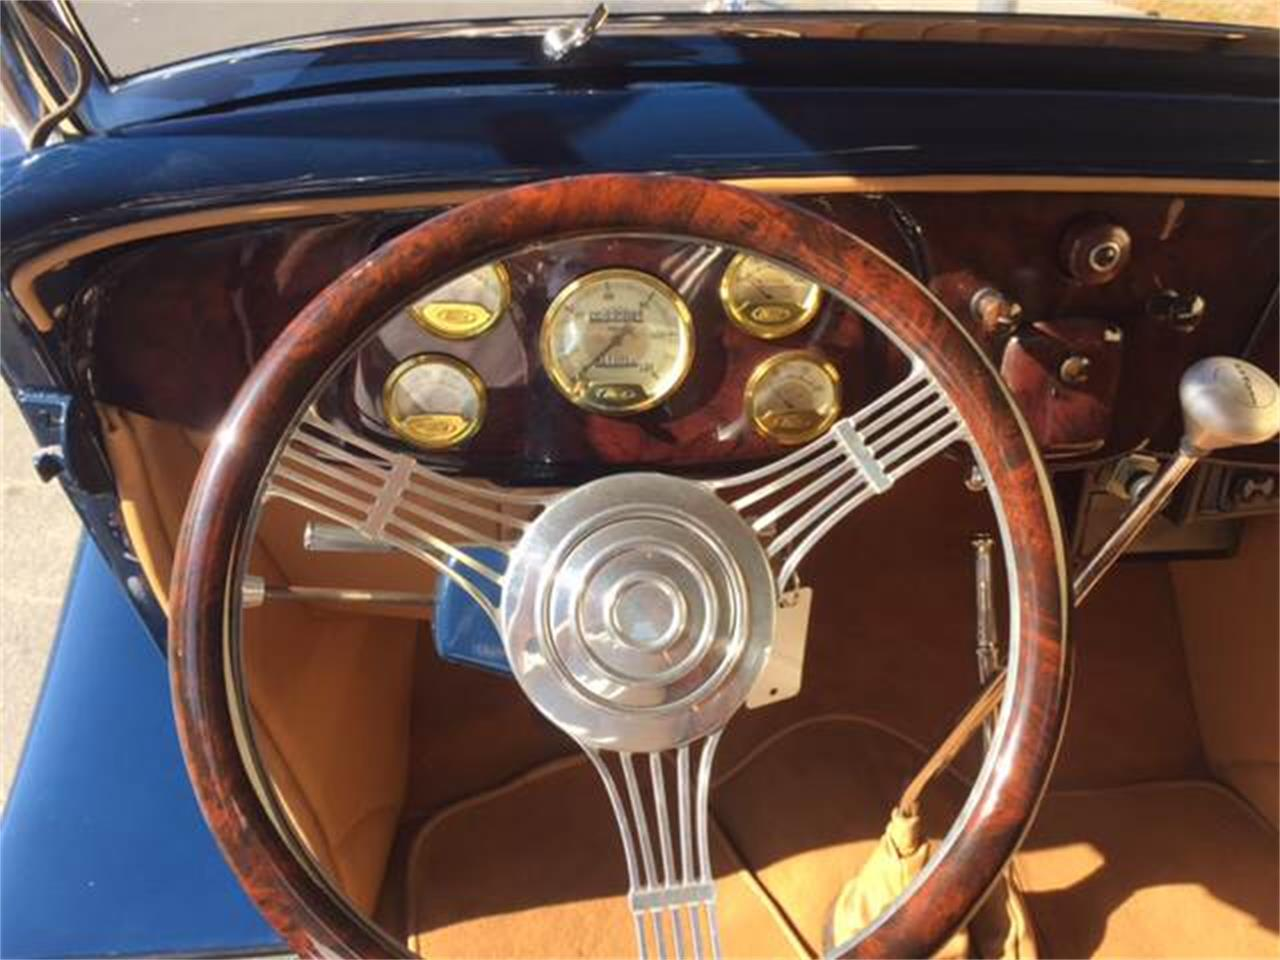 Large Picture of '34 Ford Roadster located in Brea California Auction Vehicle - MFJB